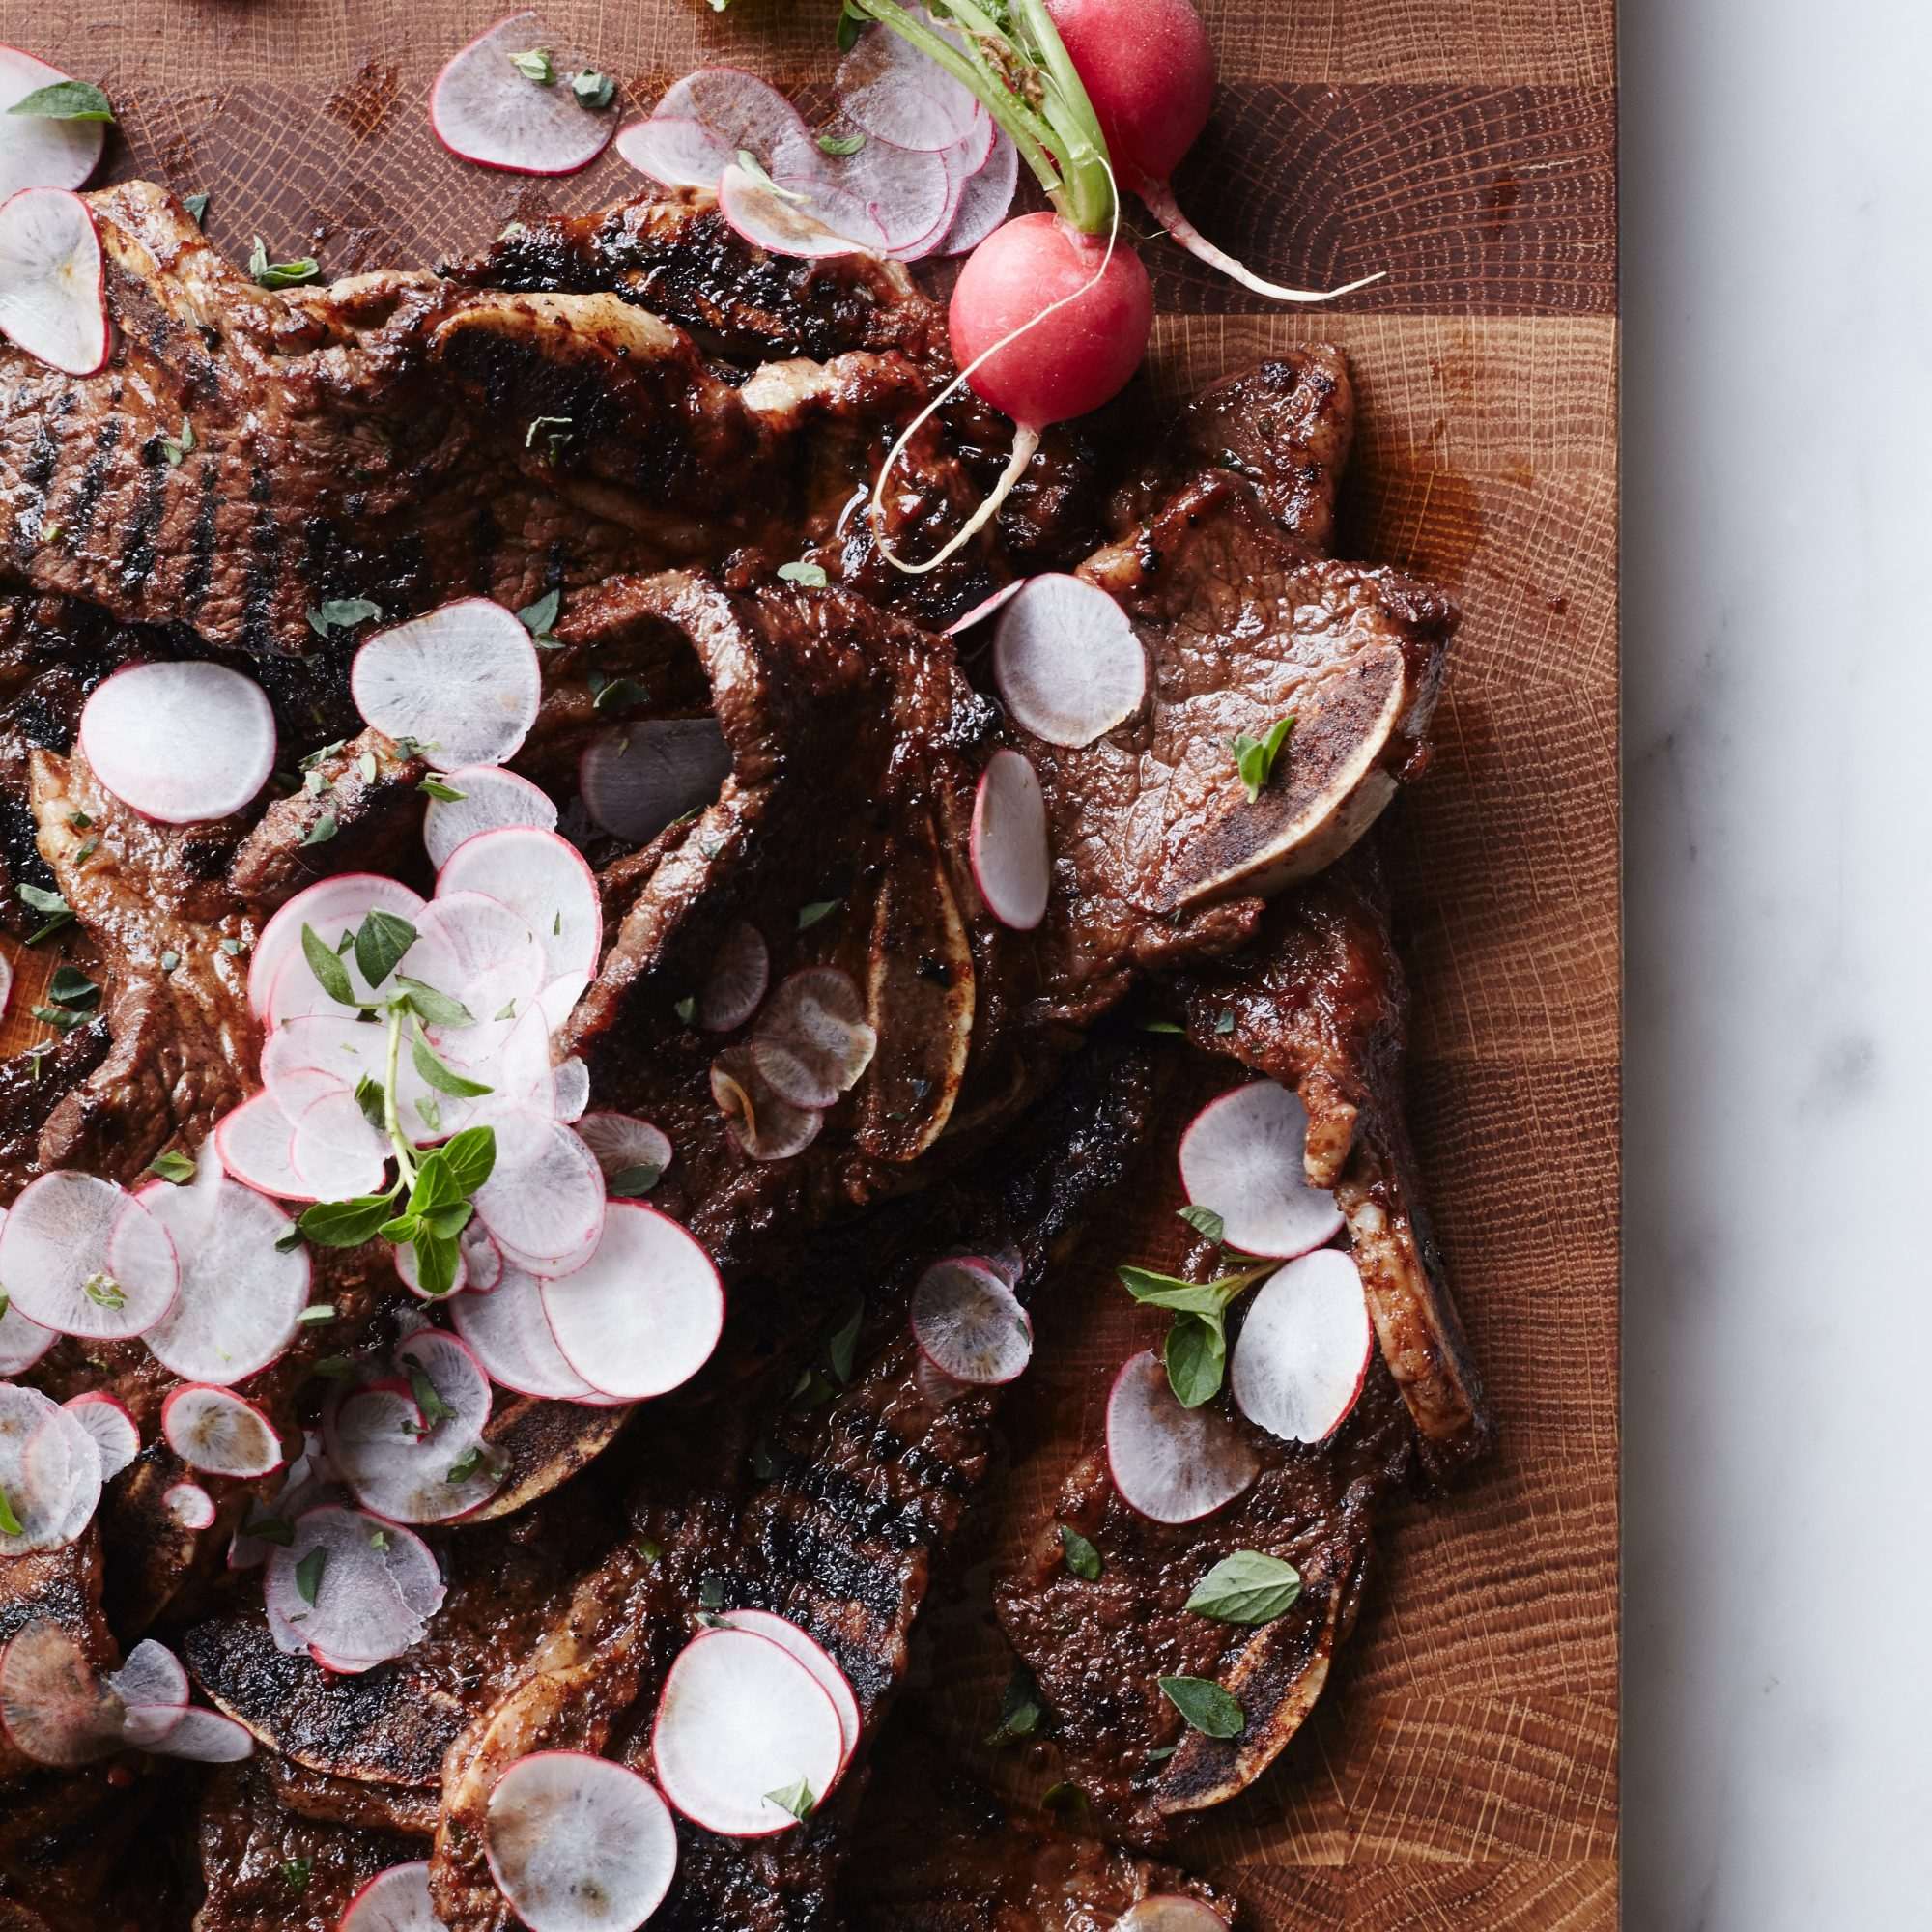 May 19: Grilled Short Ribs with Smoky Blackberry Barbecue Sauce